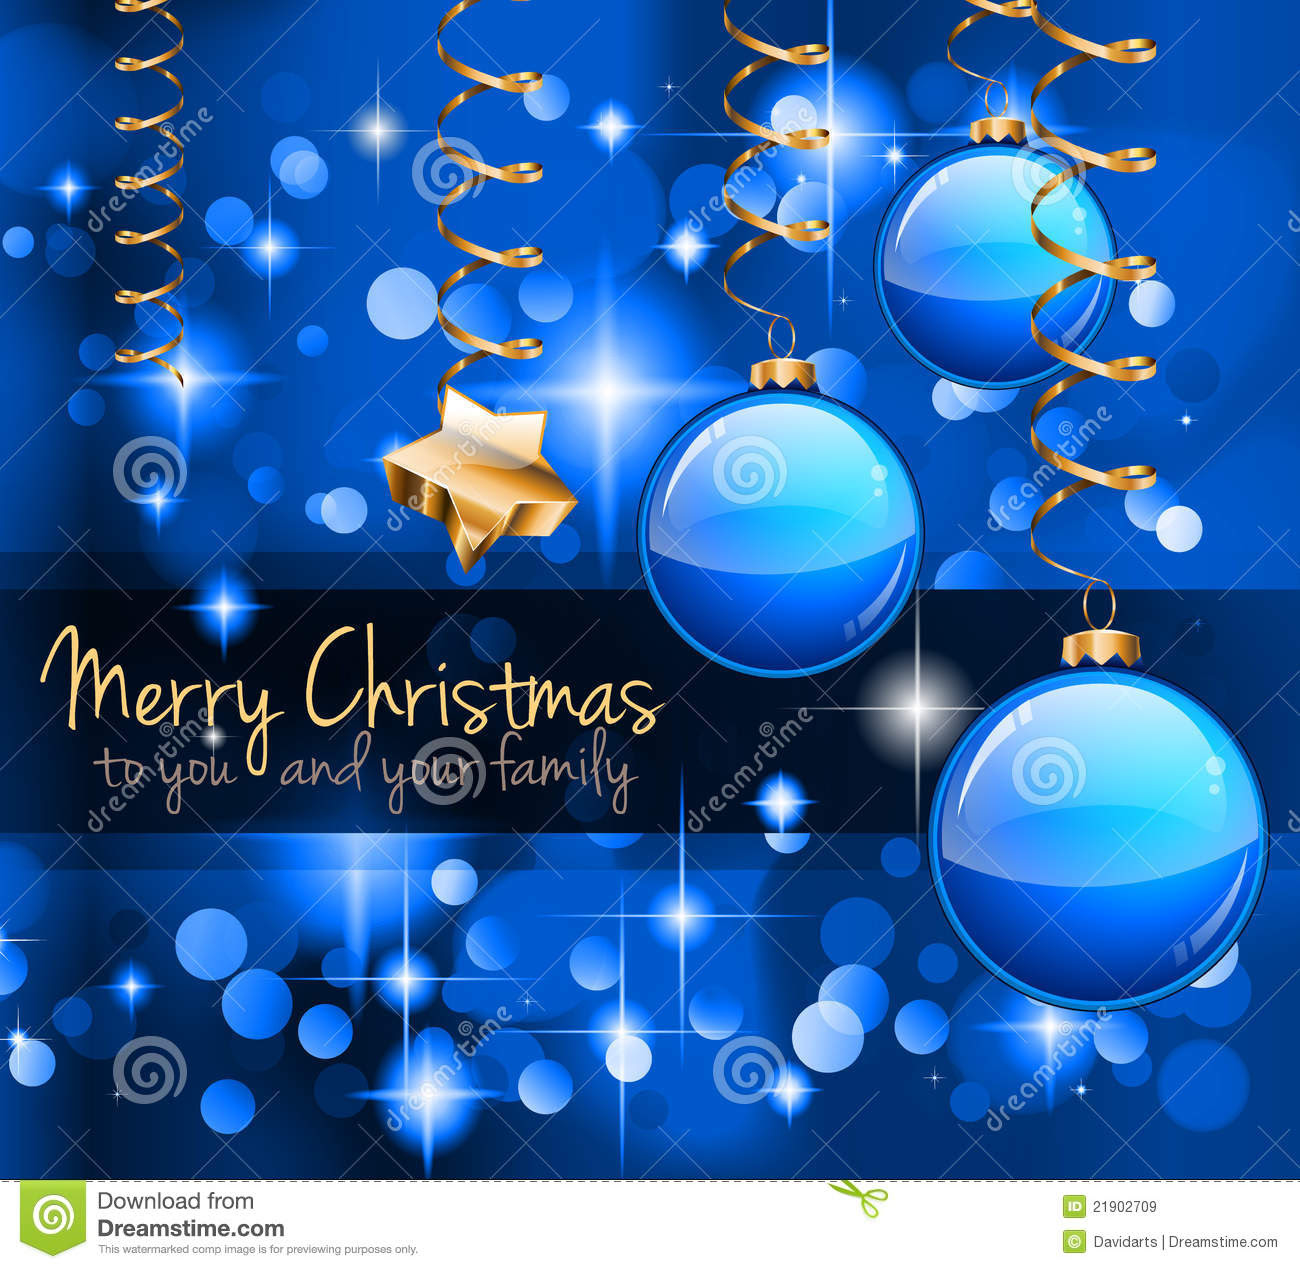 Christmas Greetings Free Download Xmast 4